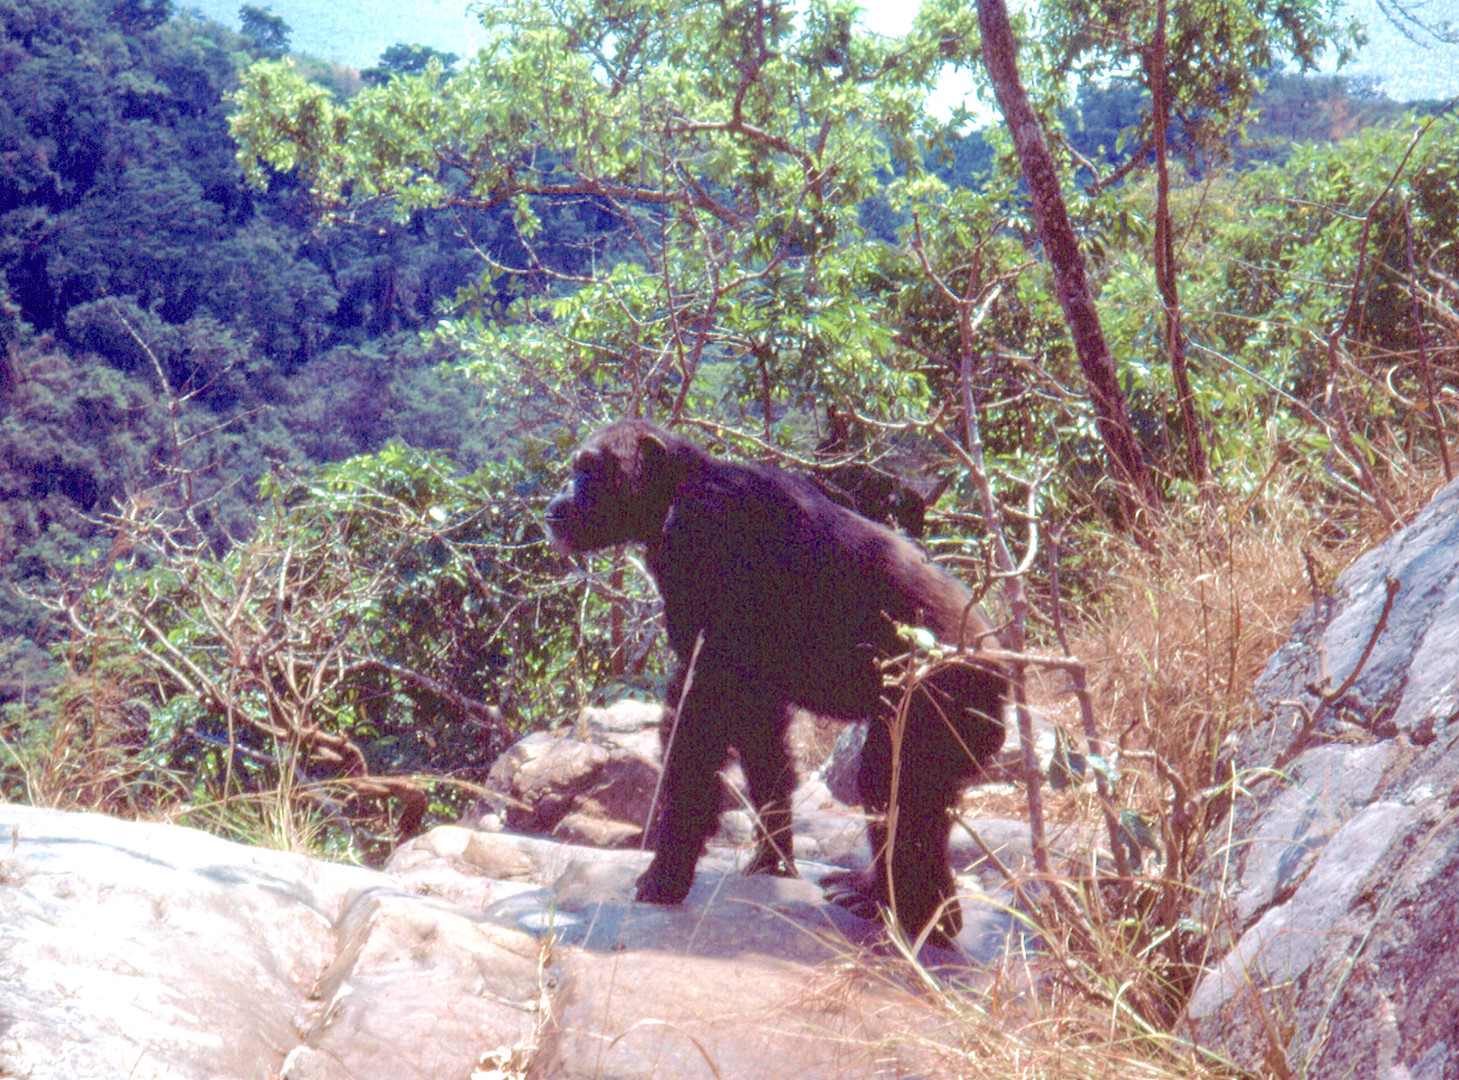 Adult male chimp patrolling from vantage point high above the valley. Photo by Curt Busse, 1974.